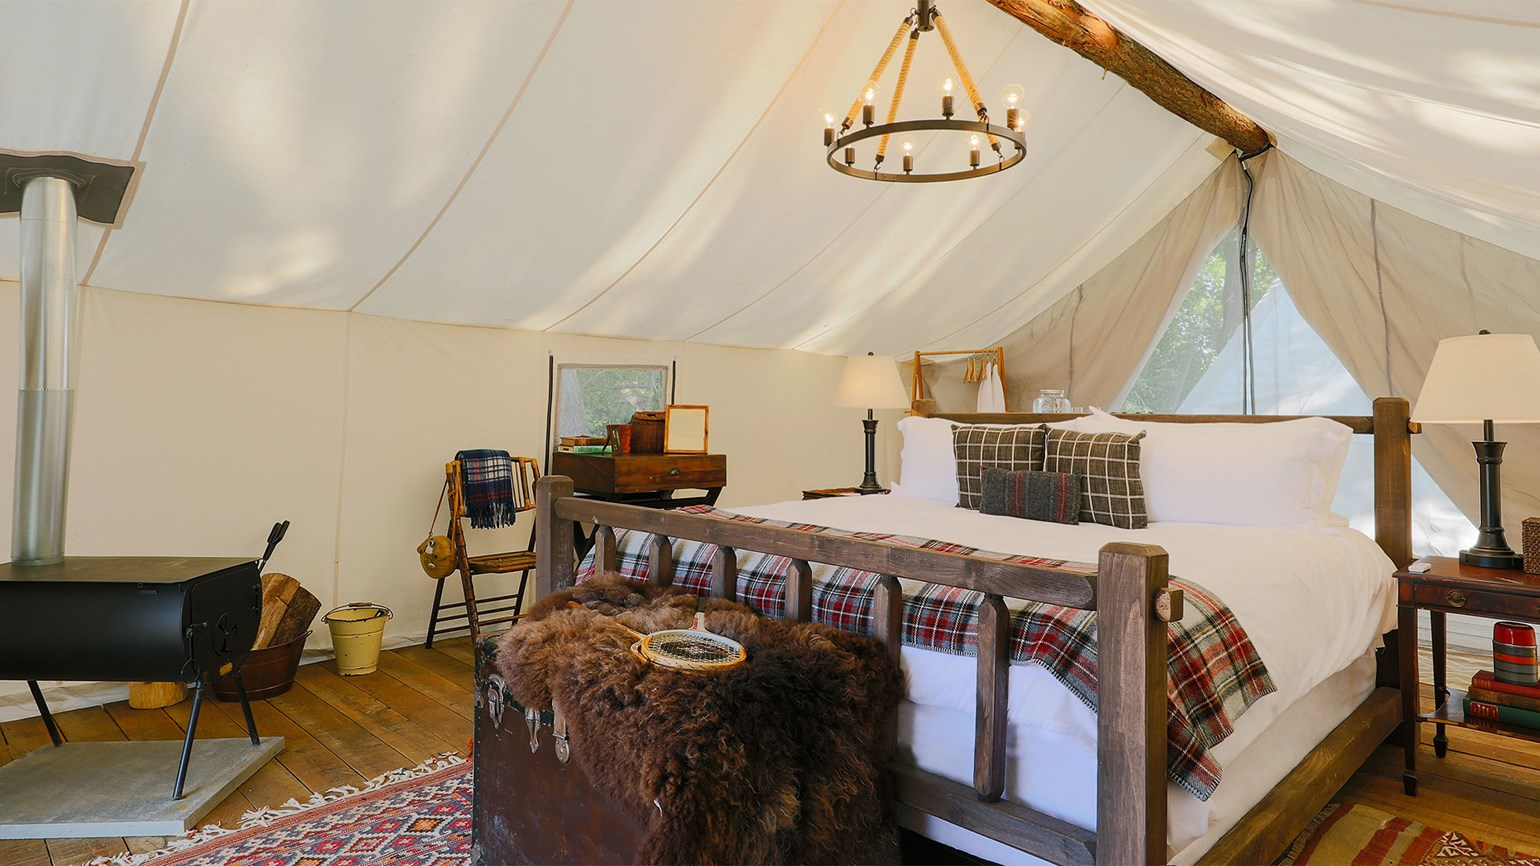 Glamping expansion: Collective Retreats gets $10M investment